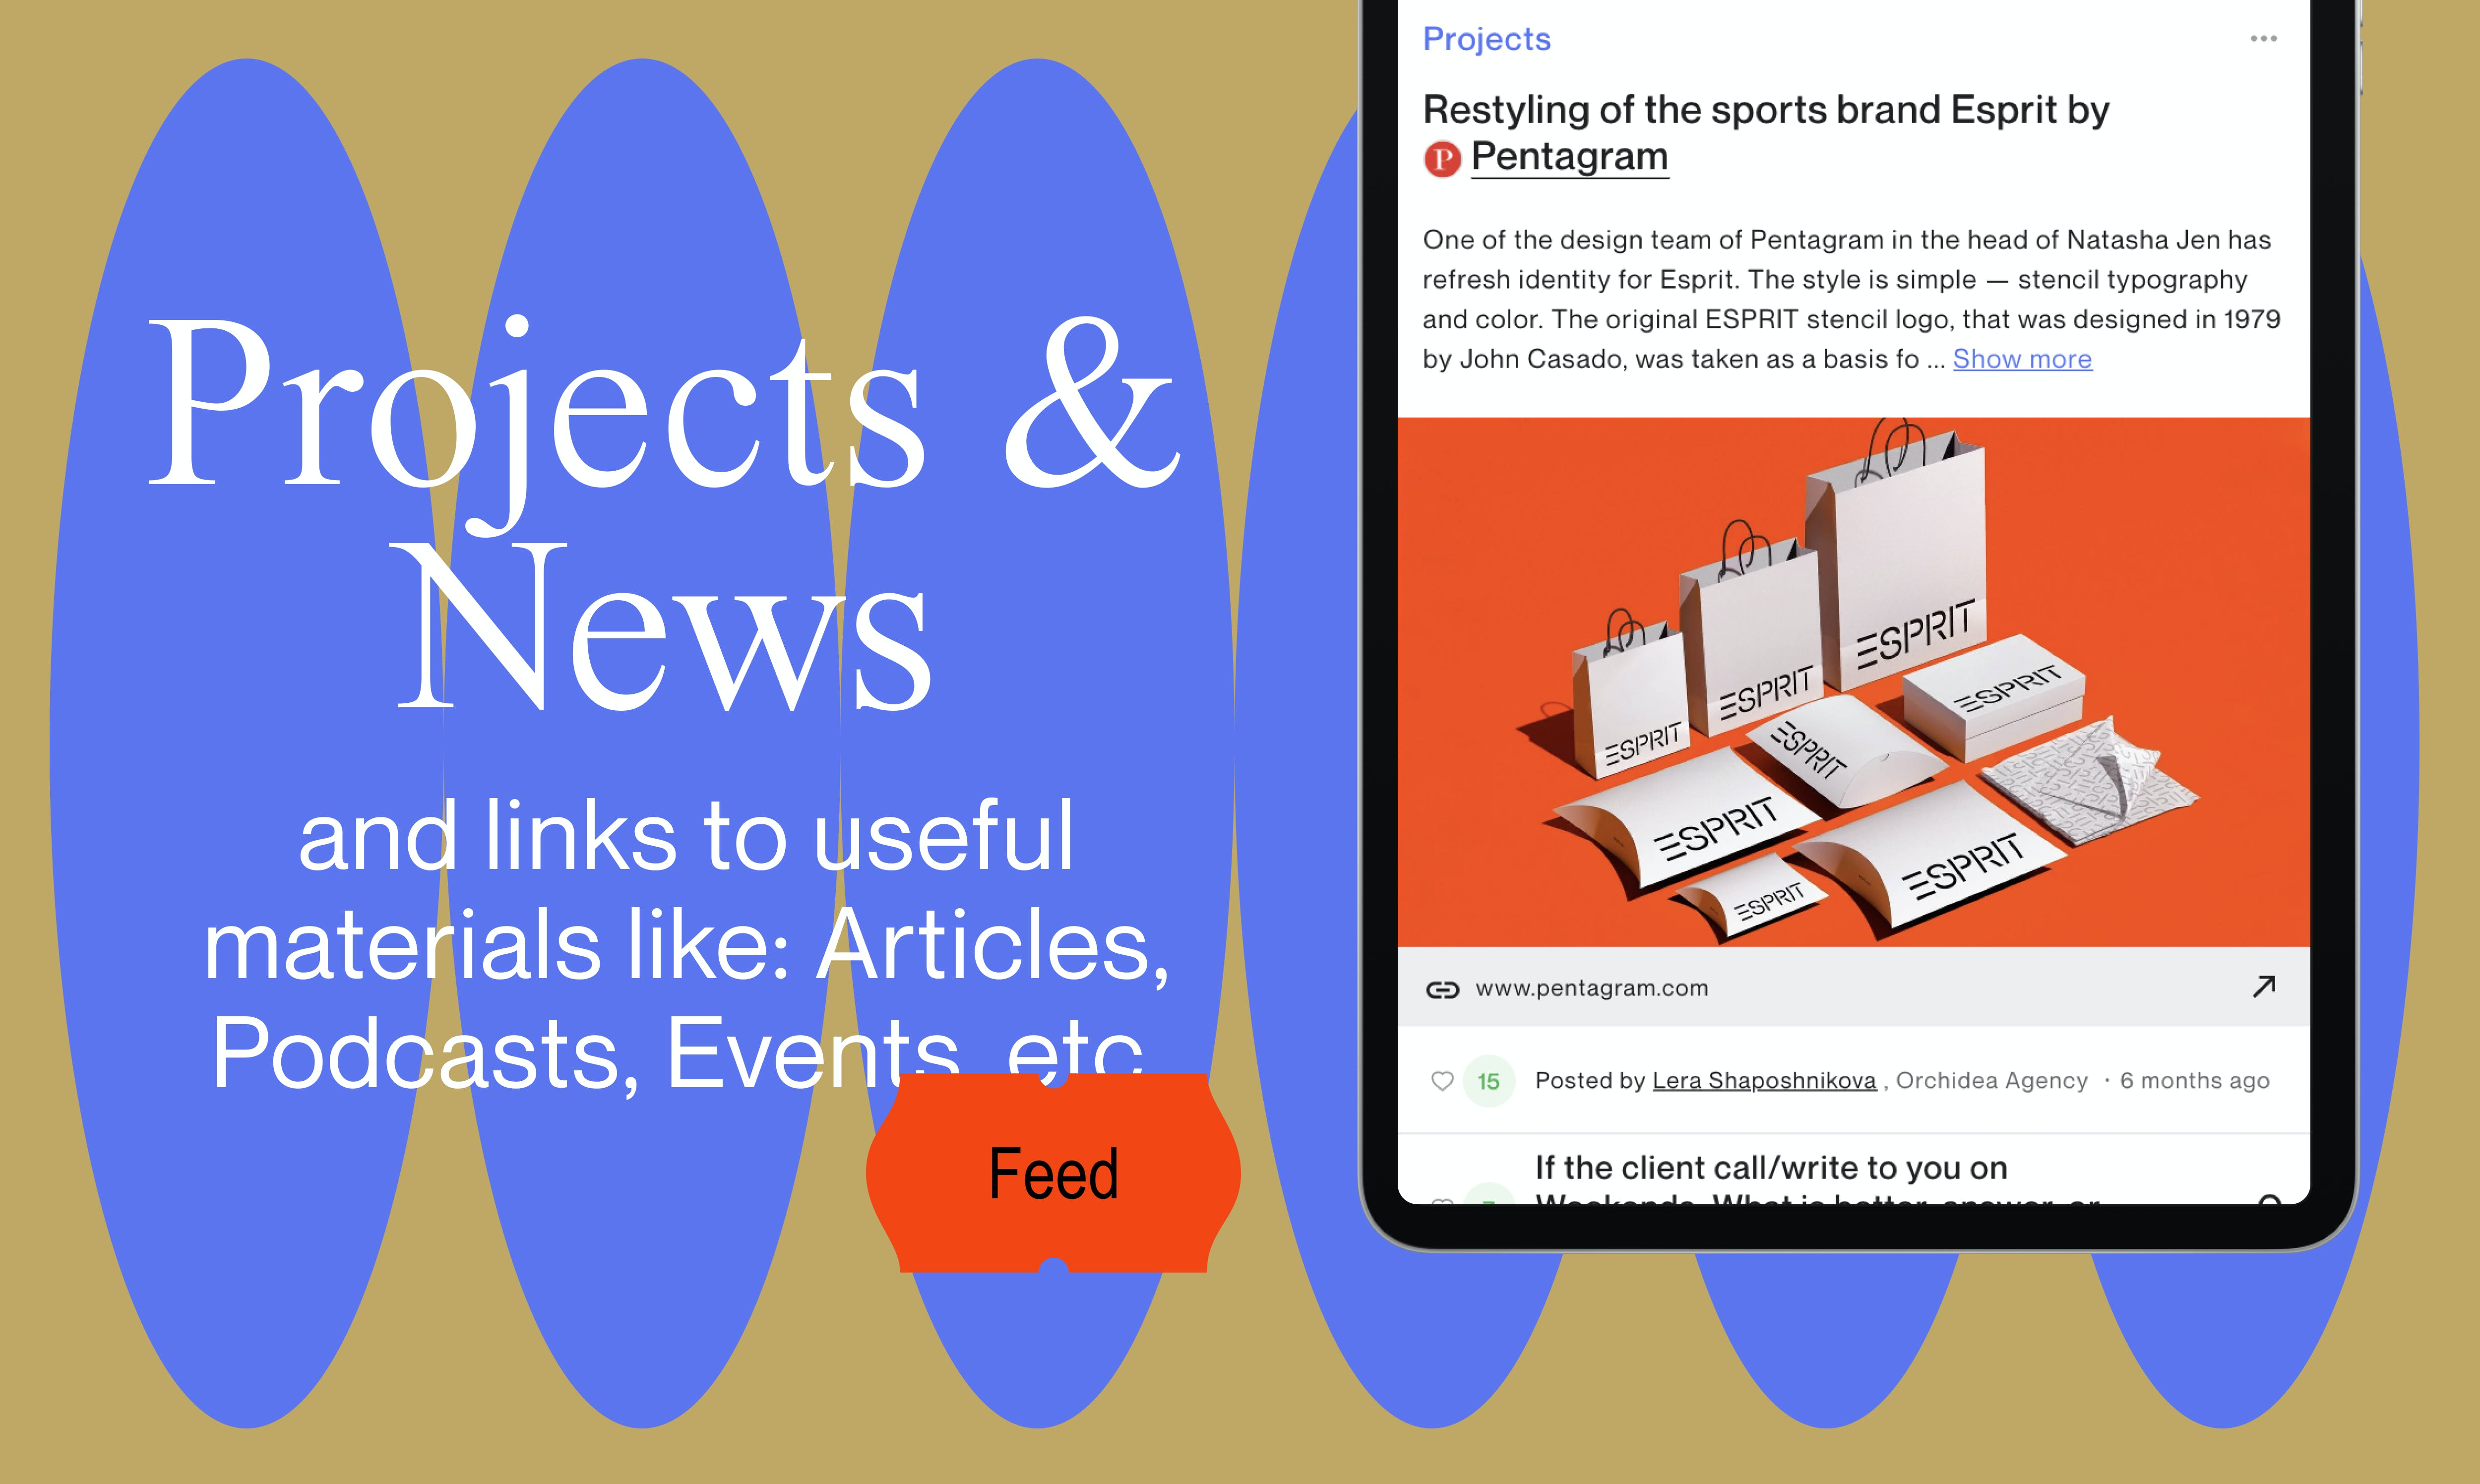 Design Business Database Of Design Agencies News And Useful Materials Product Hunt